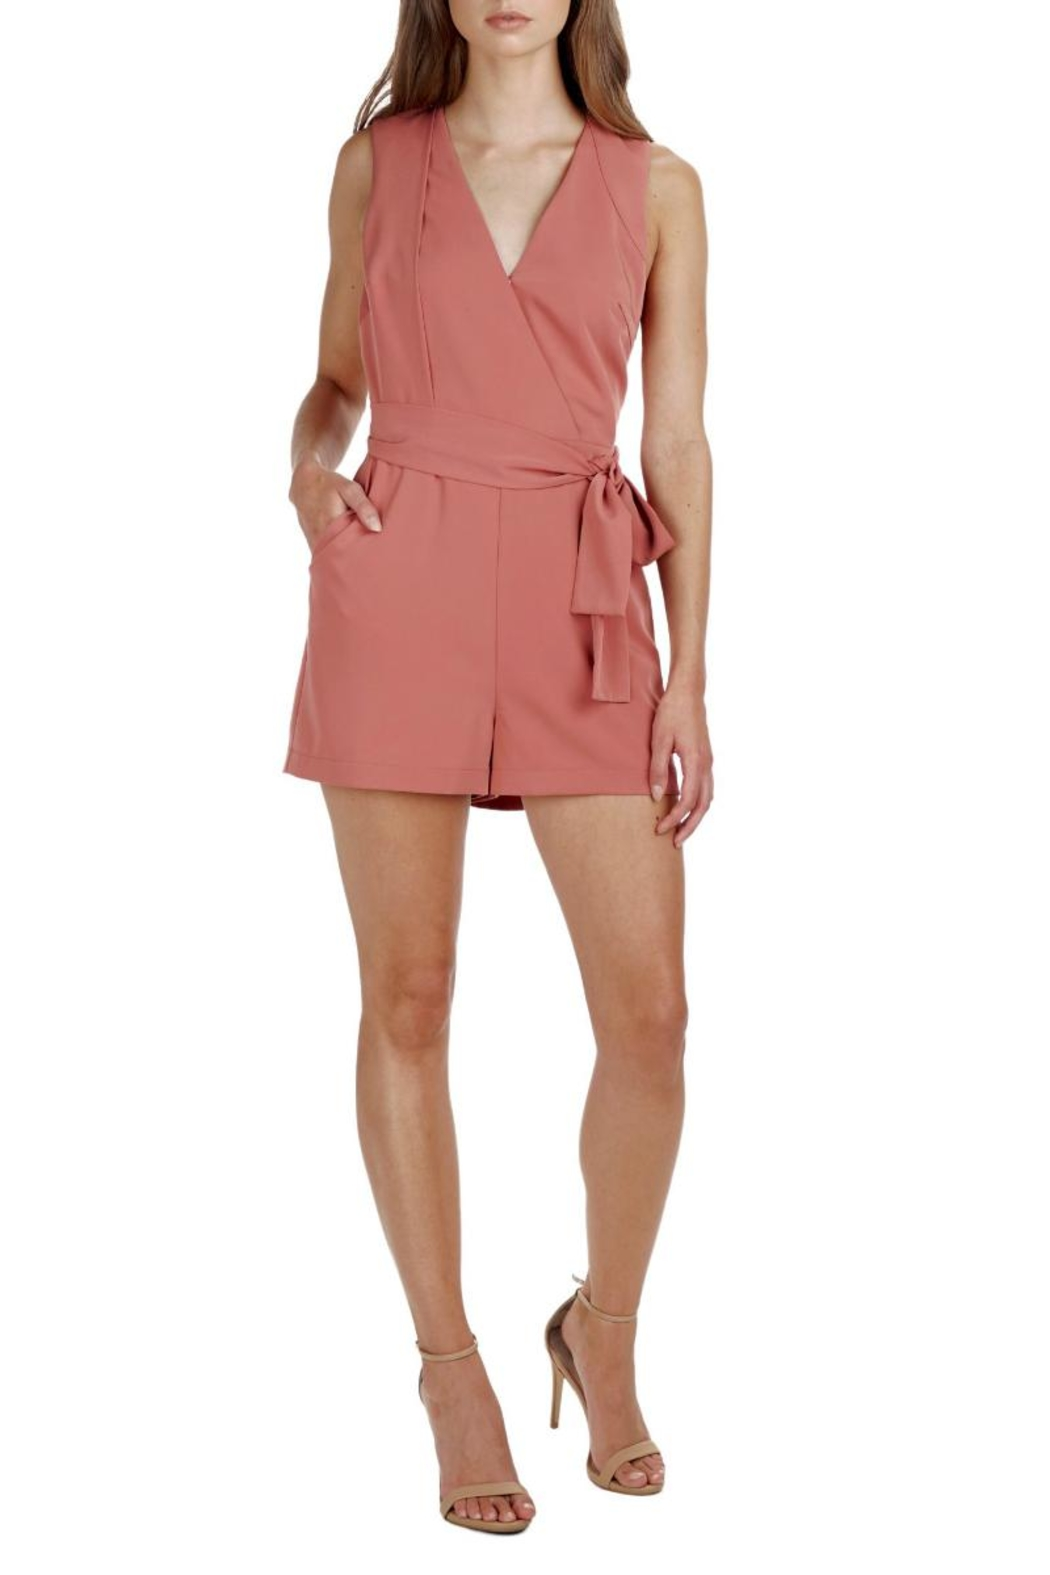 Adelyn Rae Val Woven Romper - Front Cropped Image